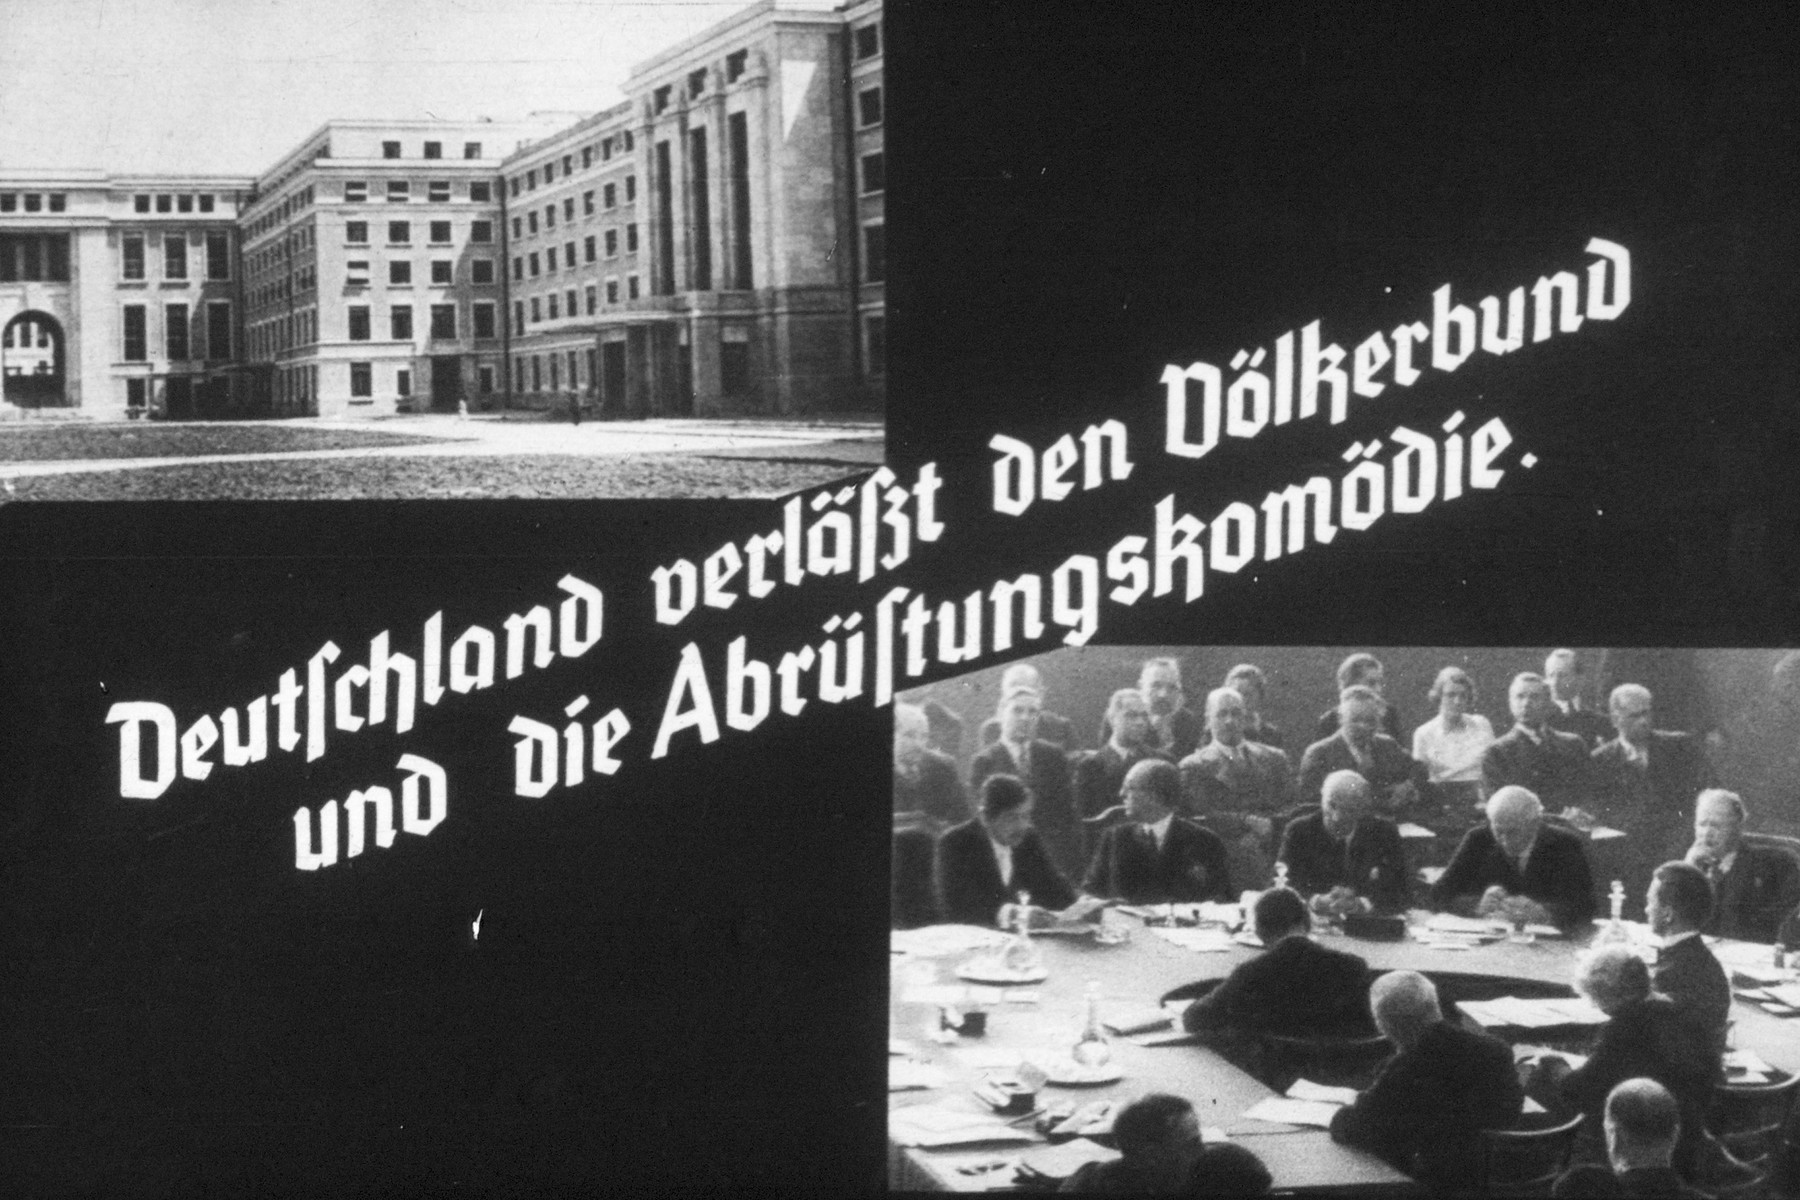 18th slide from a Hitler Youth slideshow about the aftermath of WWI, Versailles, how it was overcome and the rise of Nazism.  Deutschland verlässt den Völkerbund und die Abrüstungskomödie. // Germany leaves the League of Nations and the comedy of the disarmement.